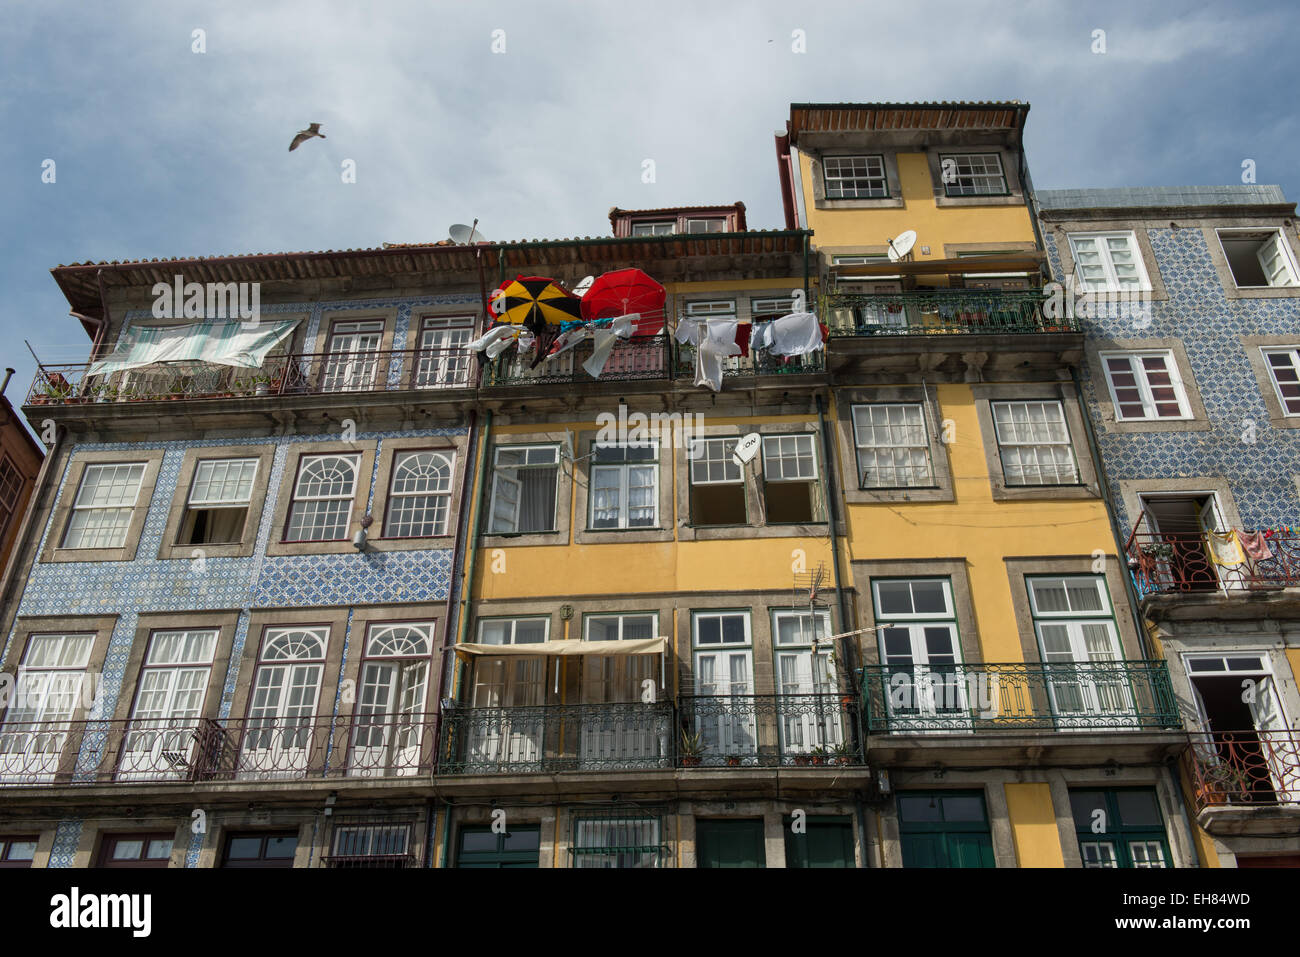 Porto, buildings and houses in the Ribeira district - Stock Image